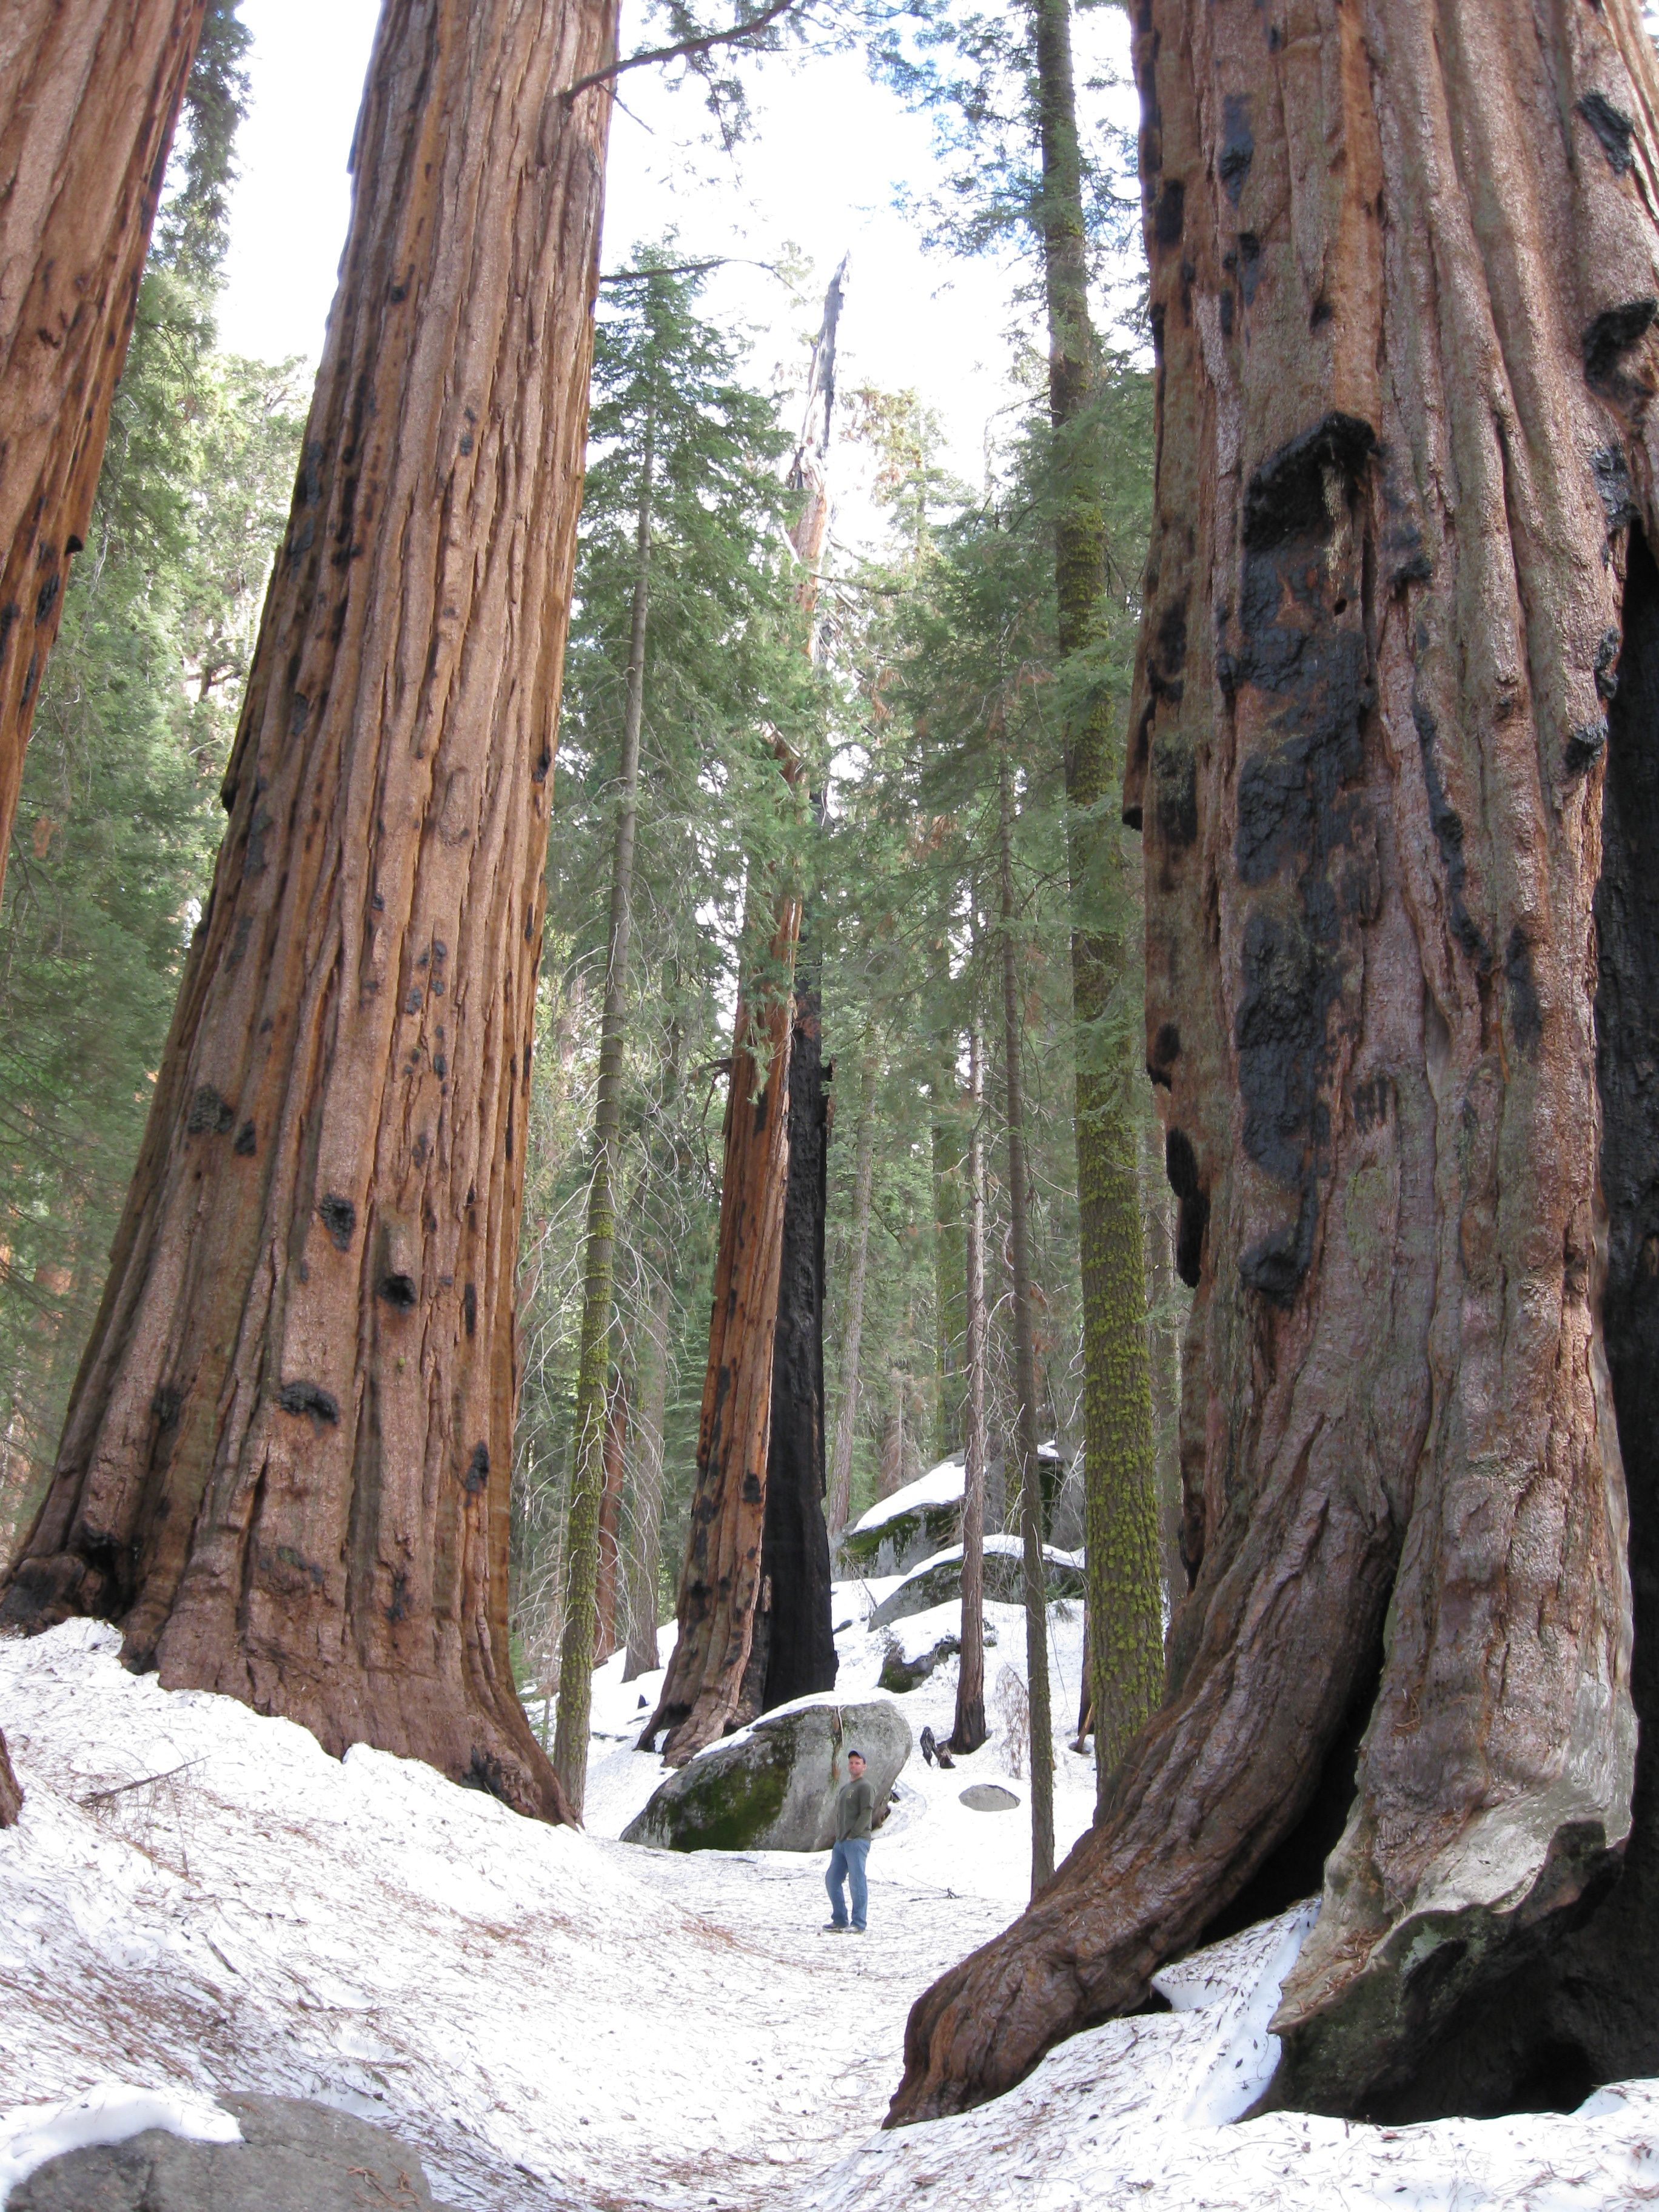 drive trees pioneer calaveras at s news cabin views mourn crew in tree national cabins california the thru famous state television death fallen park californias of forest fans a big sequoia